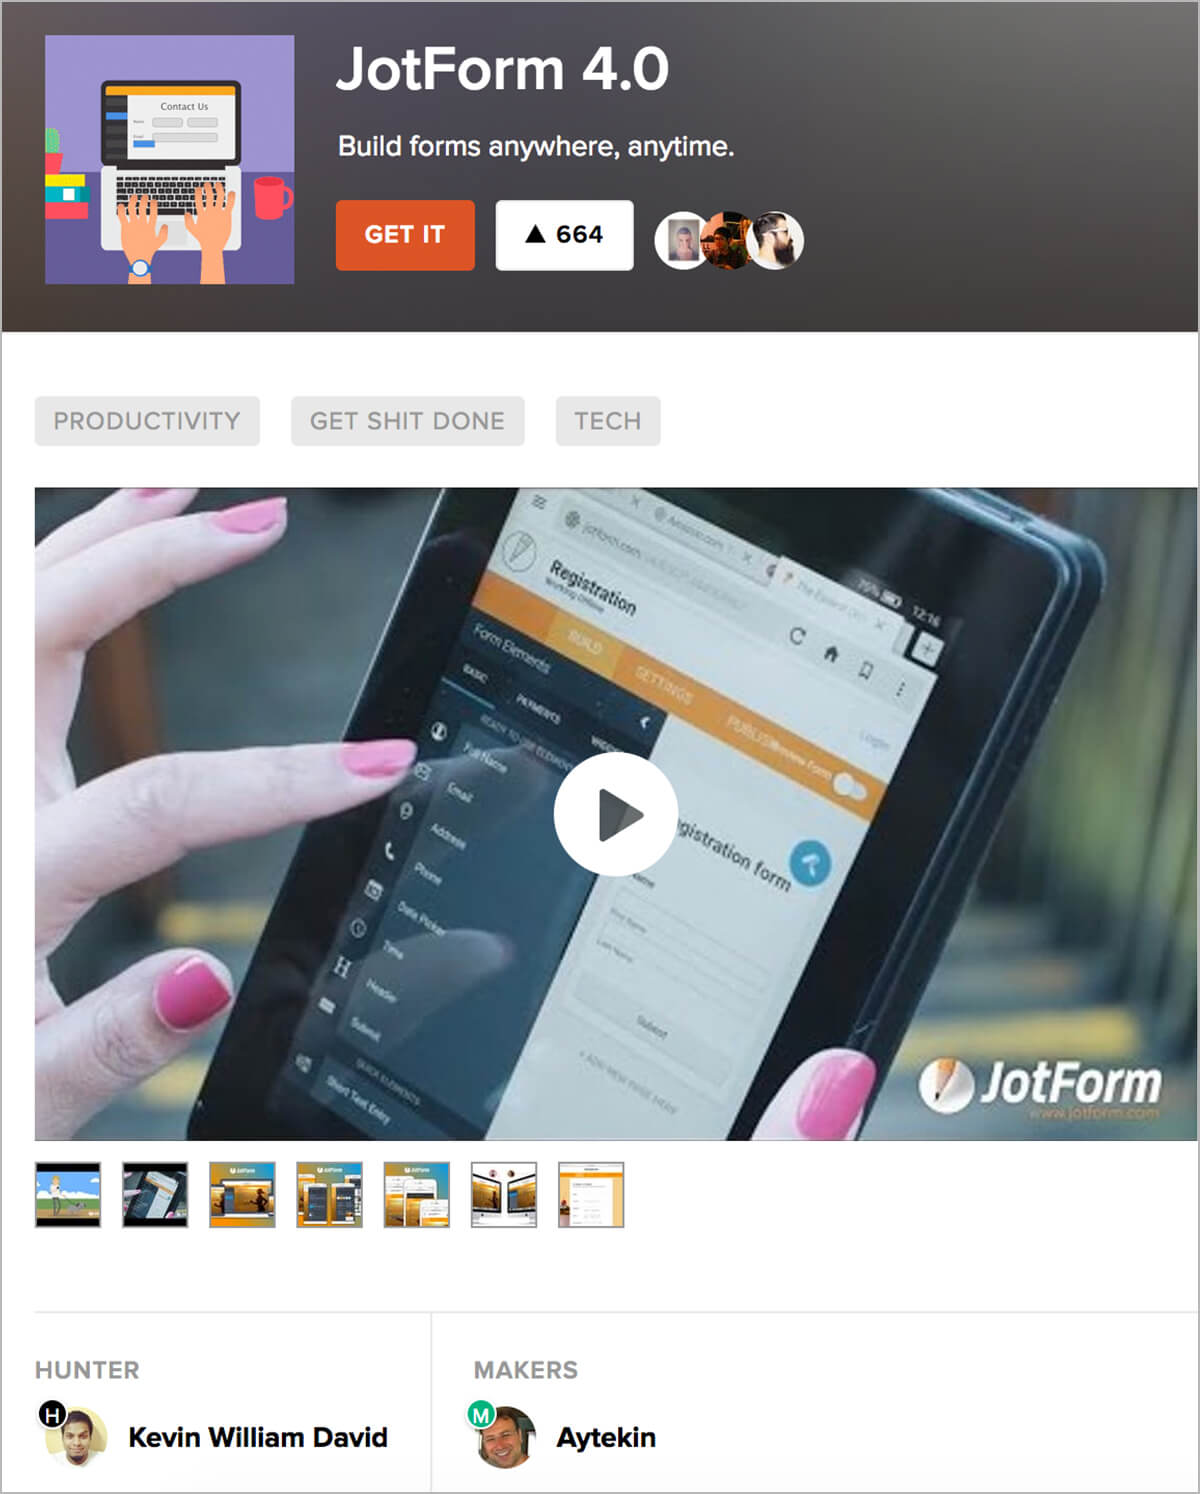 February Newsletter - JotForm 4.0 Launched at #2 on Product Hunt